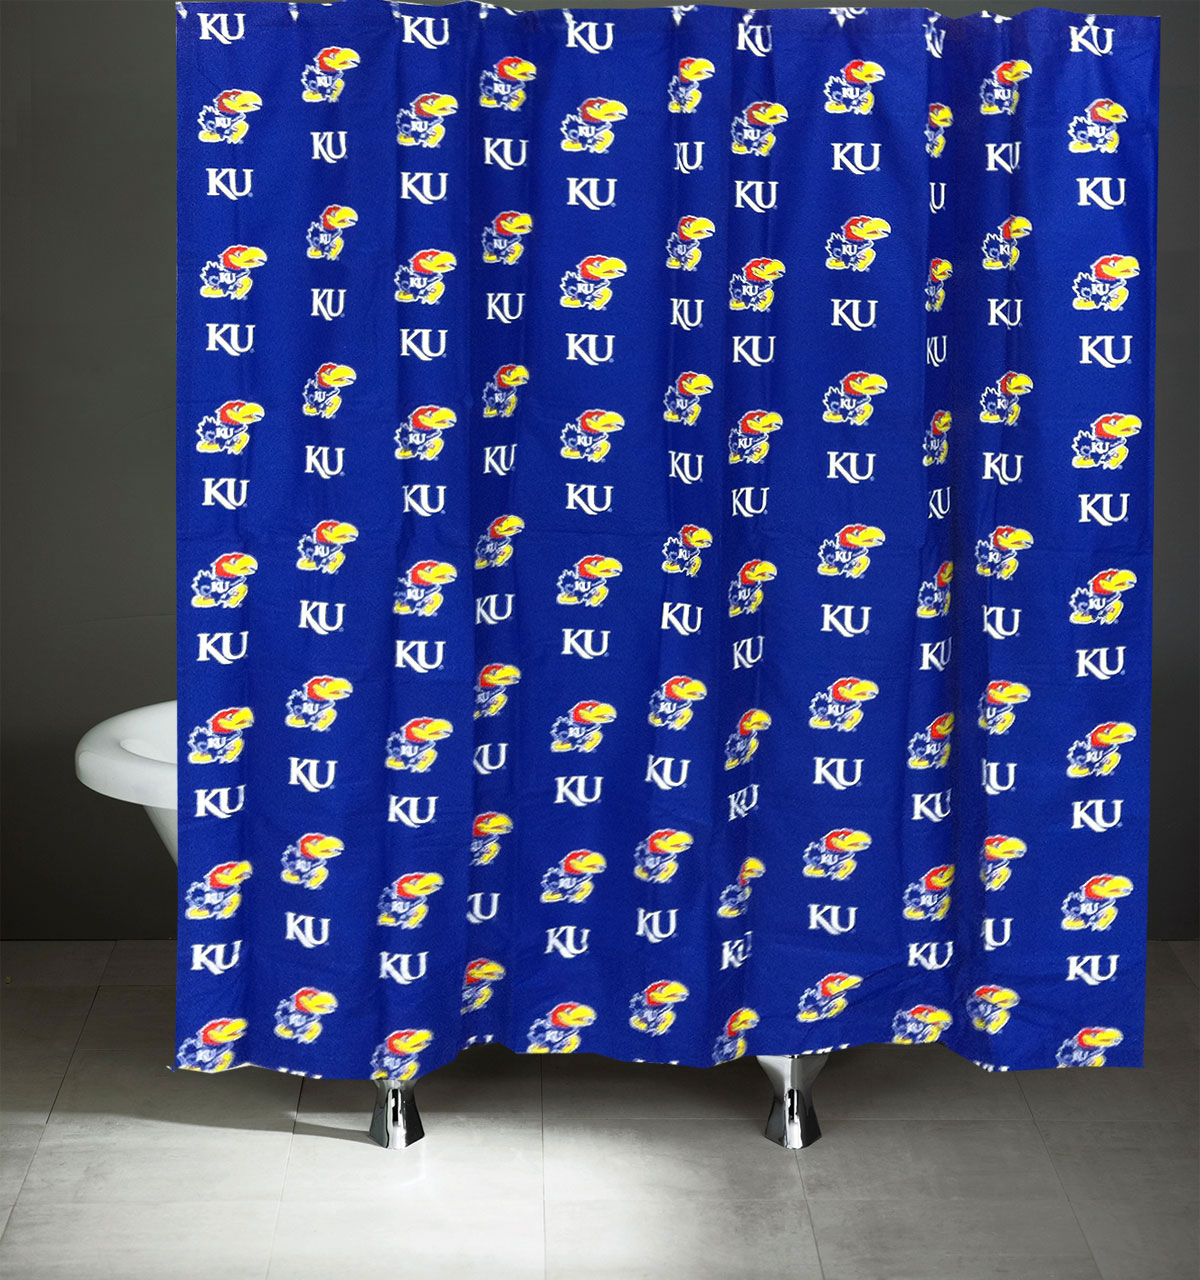 Kansas Jayhawks Shower Curtain